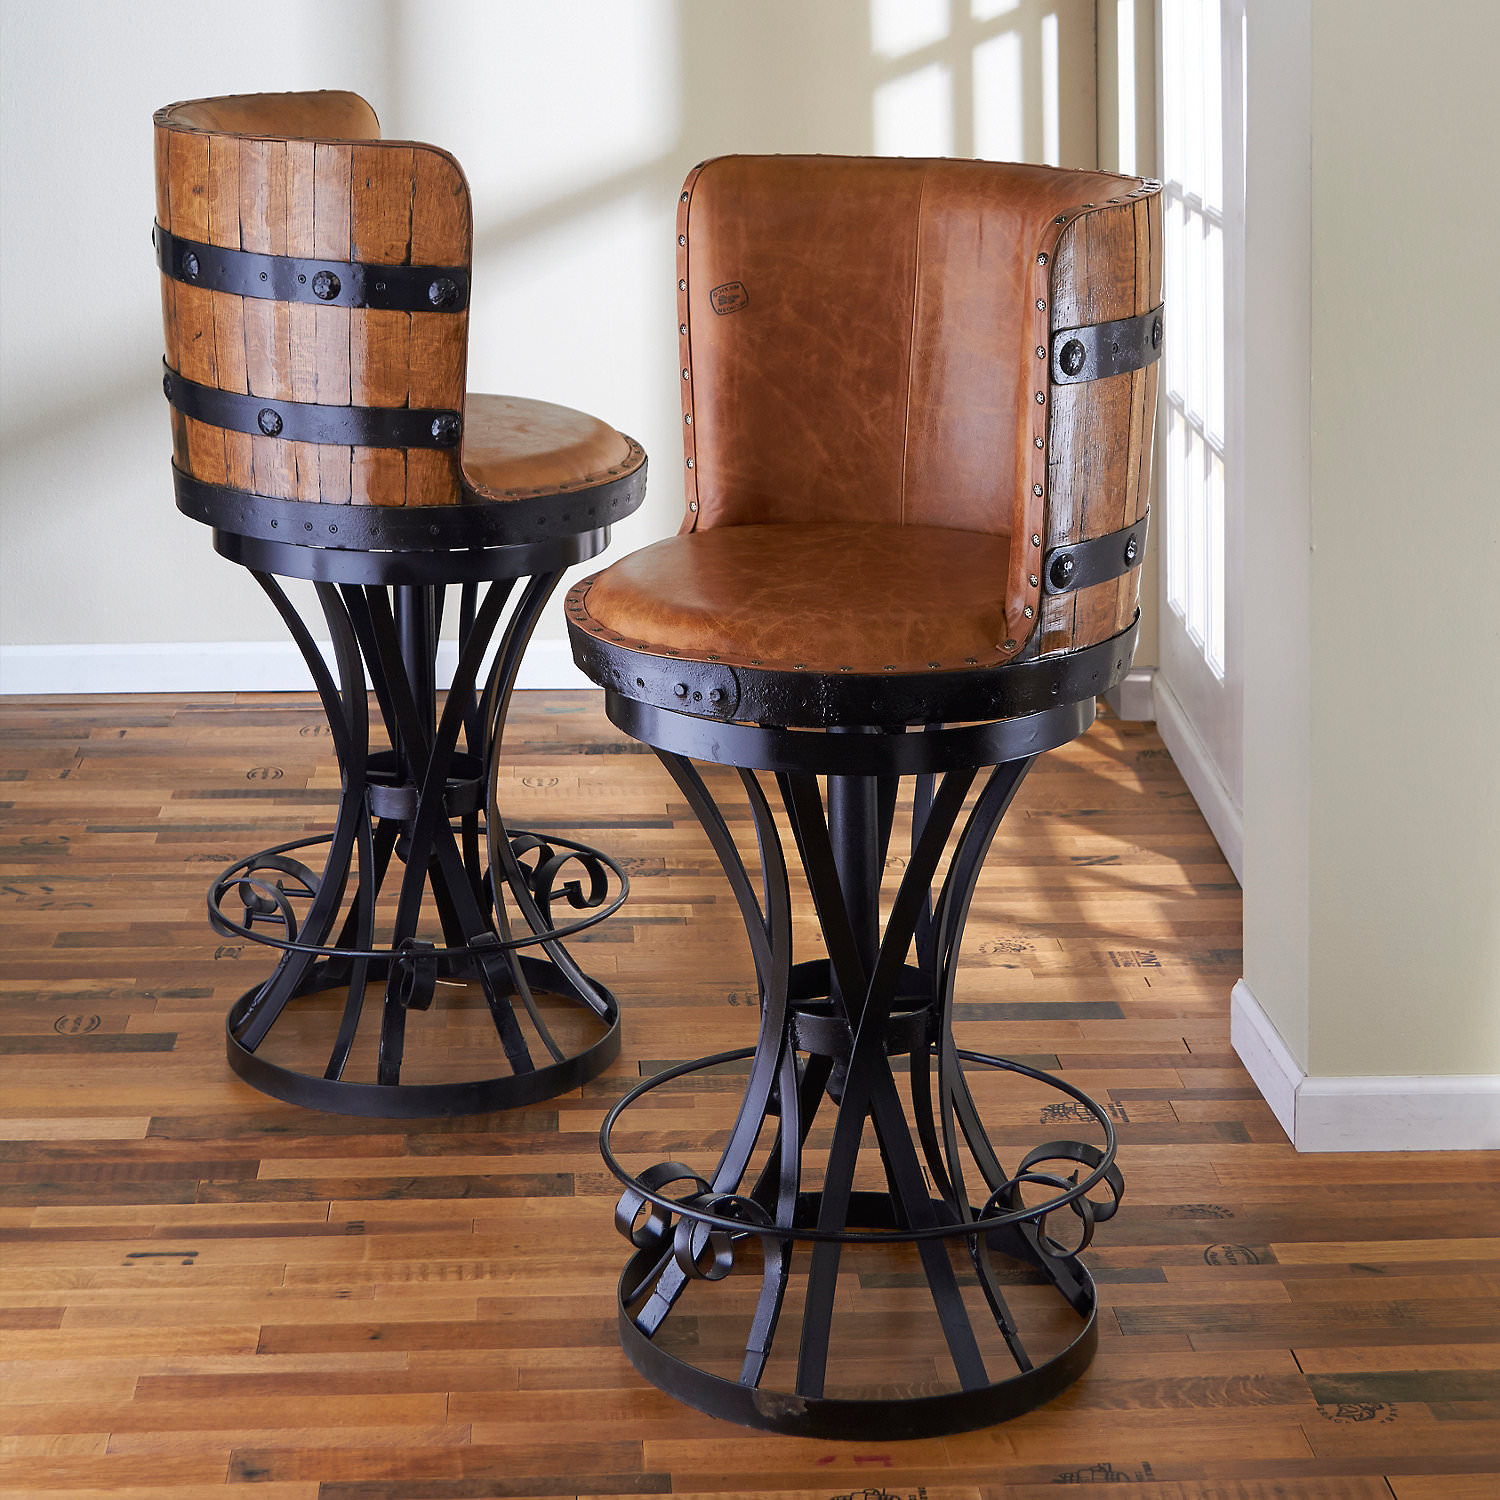 Cane Back Bar Stools | Seagrass Bar Stools | Bar Stools with Arms